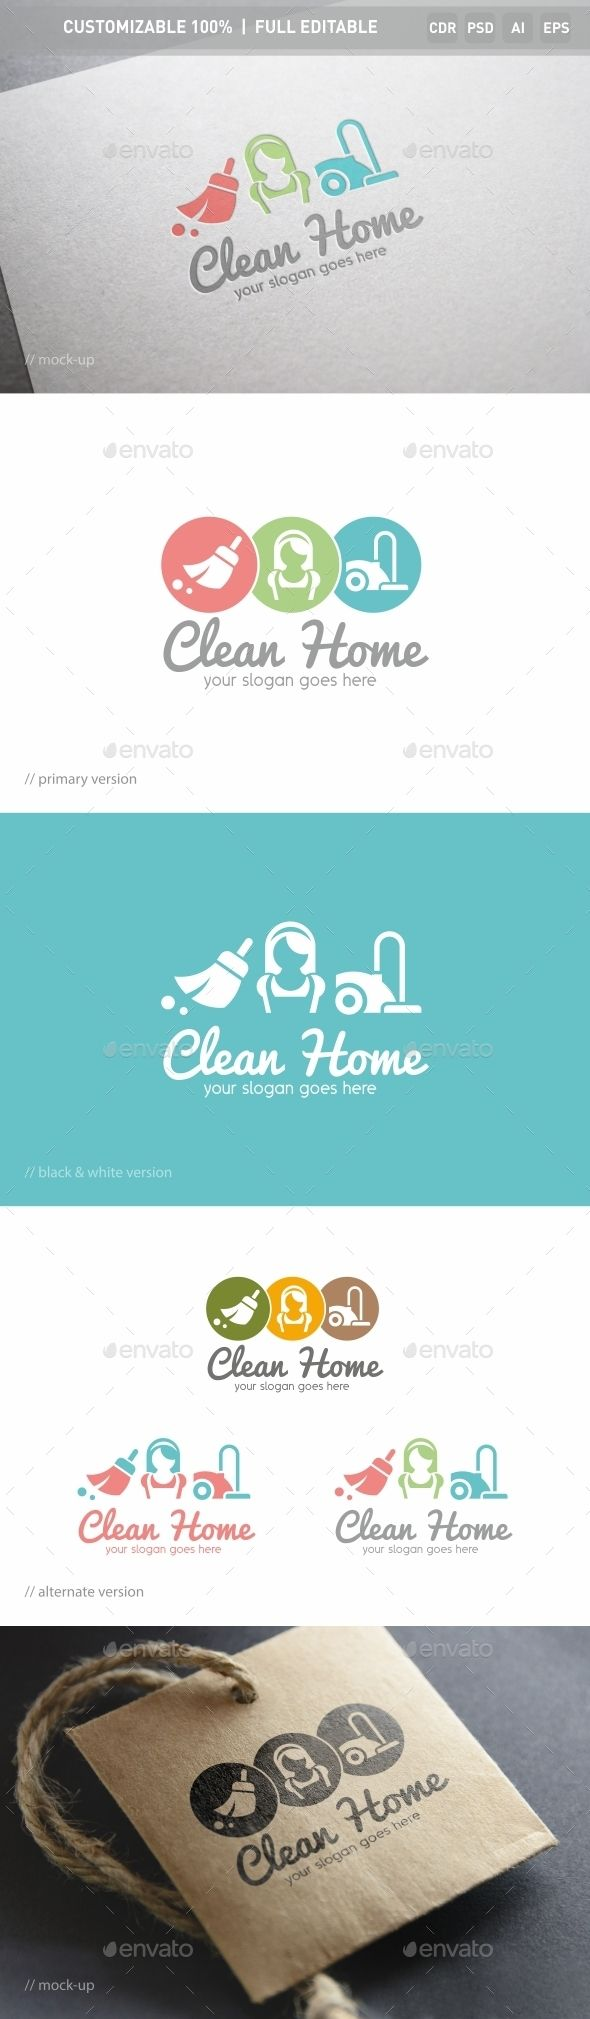 Clean Home Logo Template design logotype Download http